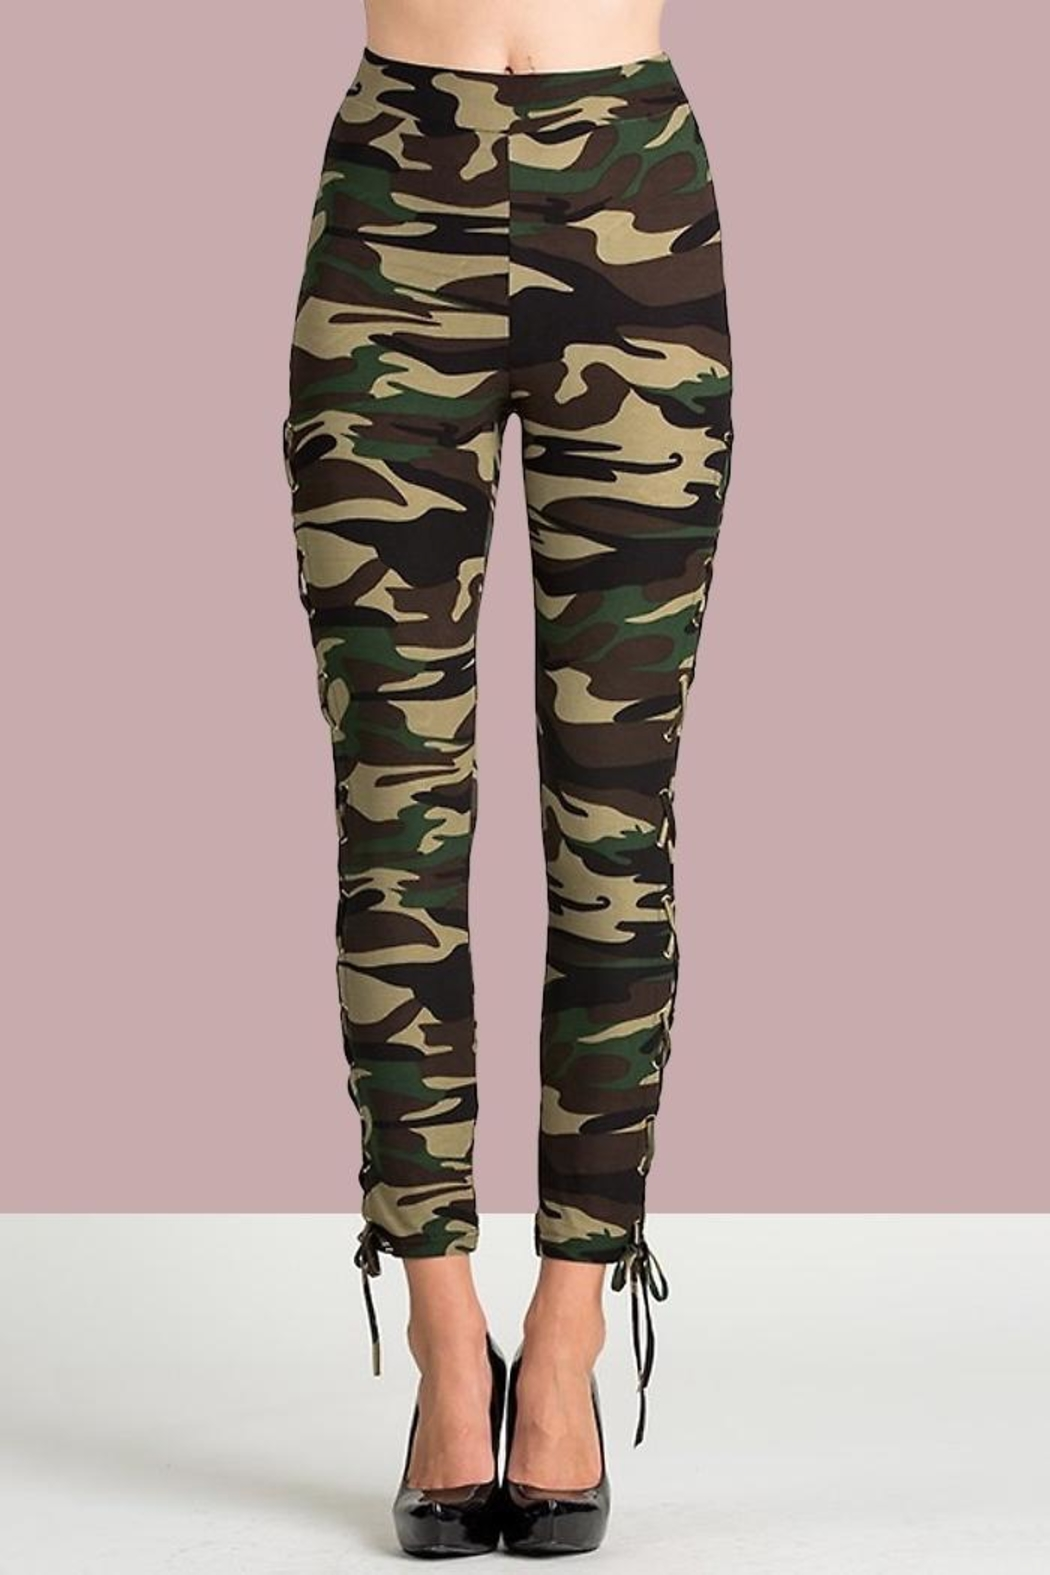 People Outfitter Camo Lace-Up Pants - Front Full Image